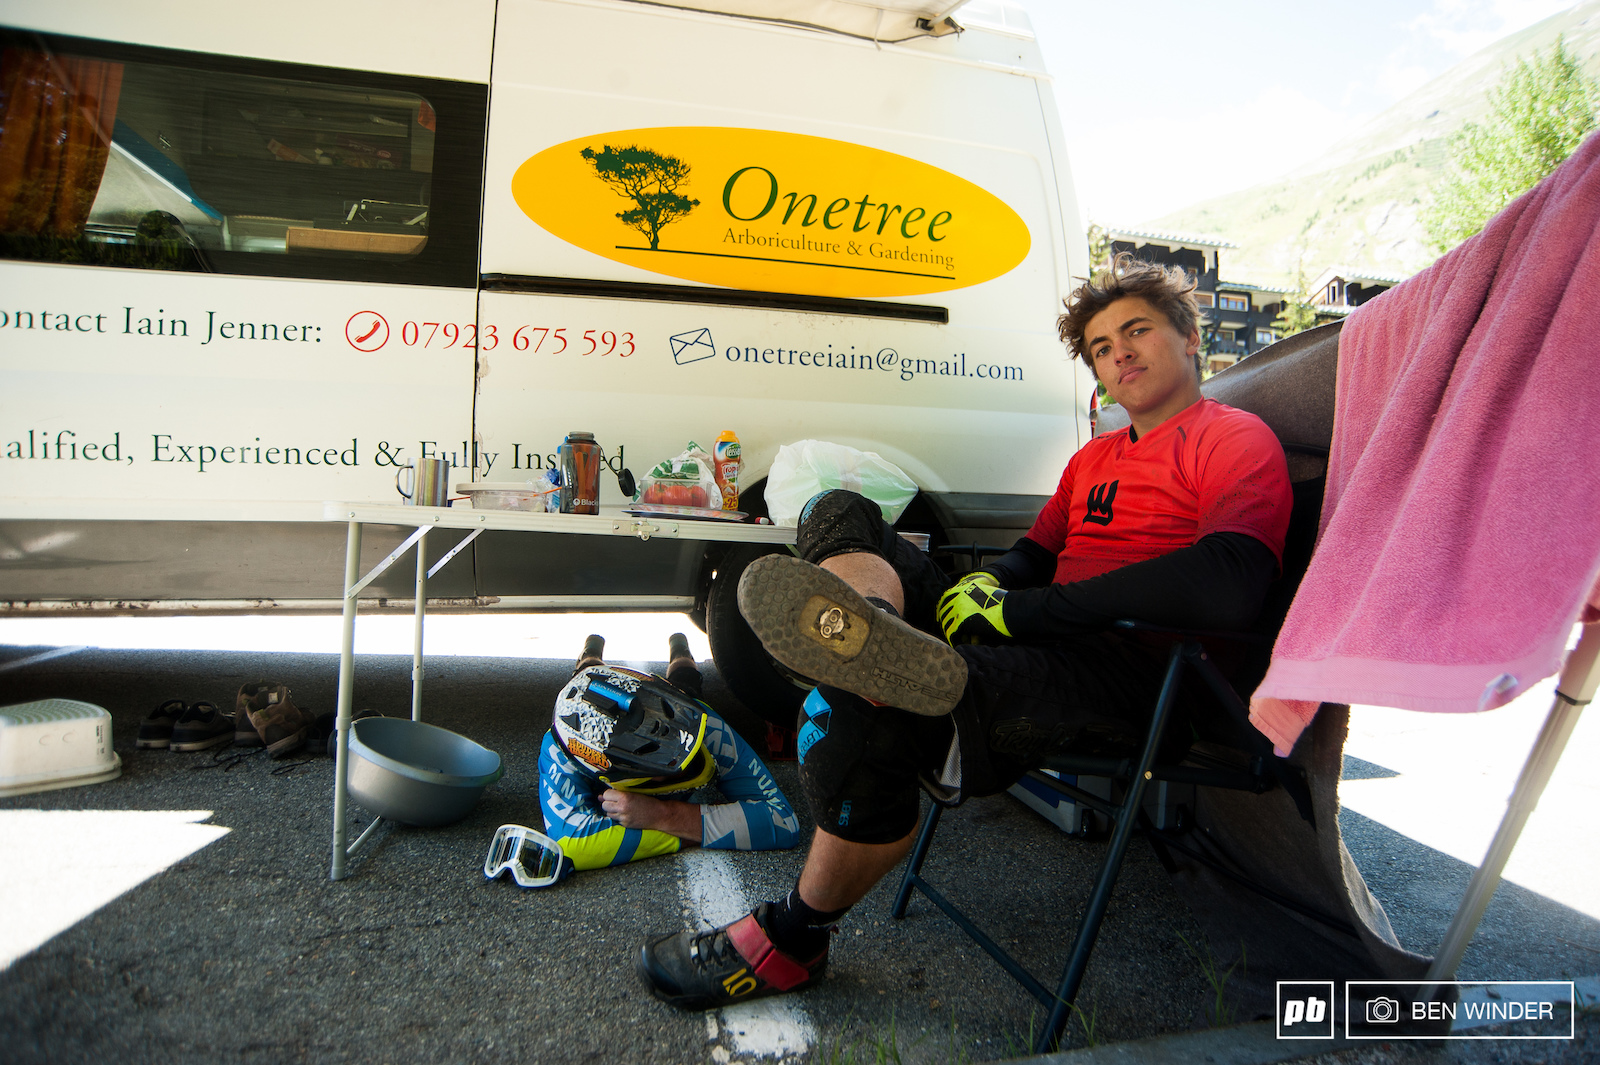 Vans can get pretty warm in the heat of a sunny day so finding somewhere cool to sit is all important. Lachlan and Liam Moynihan finding the all-important shade during the days riding.